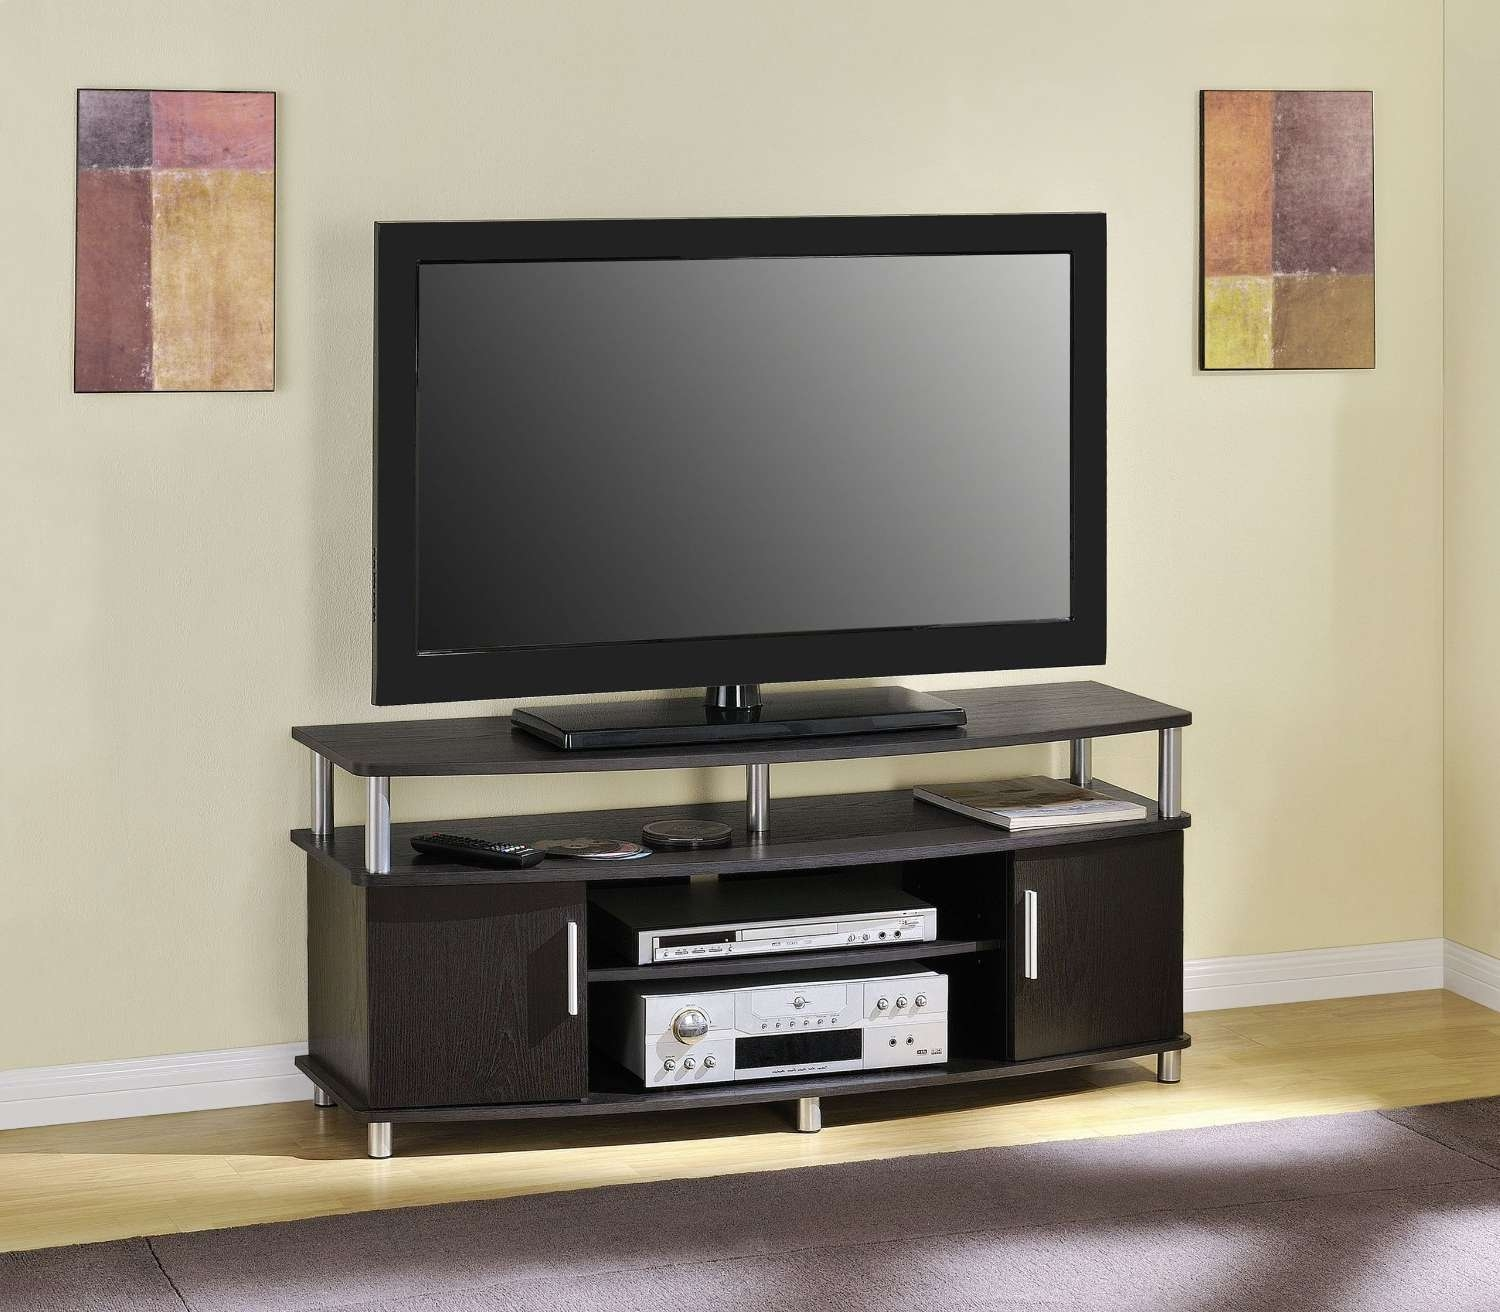 Tv Stands: 7 Best Selling Flat Screen Tv Stands 2017 Pertaining To Contemporary Tv Stands For Flat Screens (View 18 of 20)